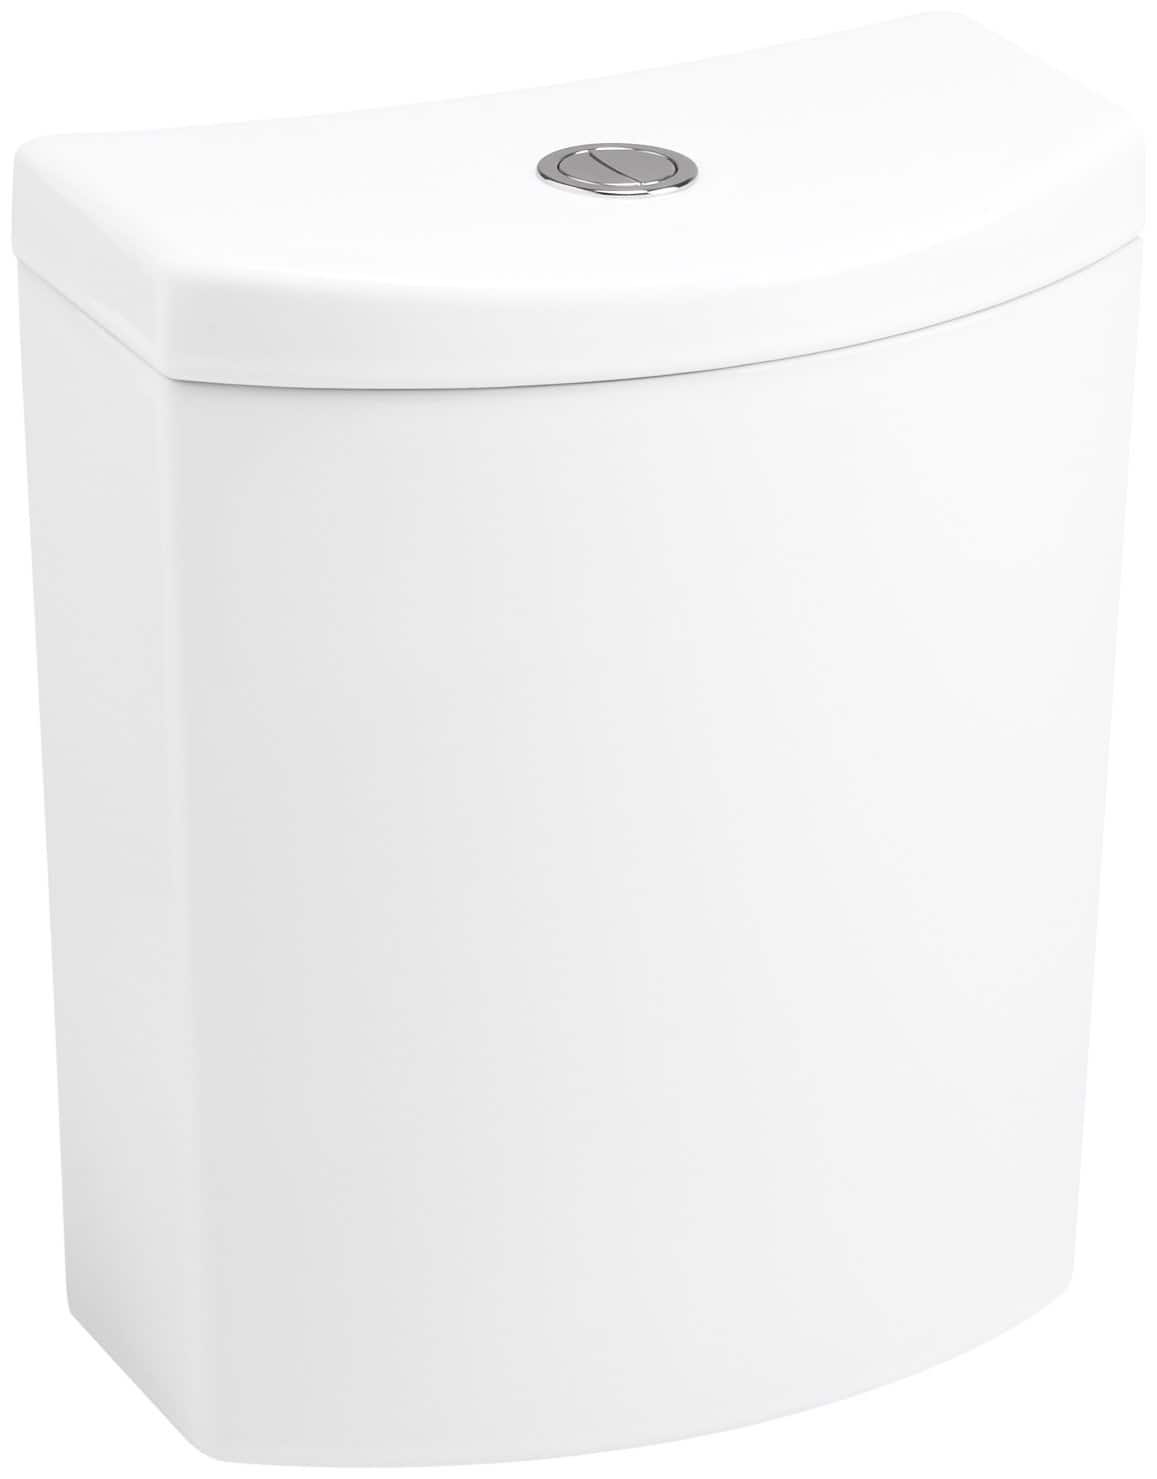 Kohler Persuade Dual Flush, Tank Only in White $51.76 + Free Shipping